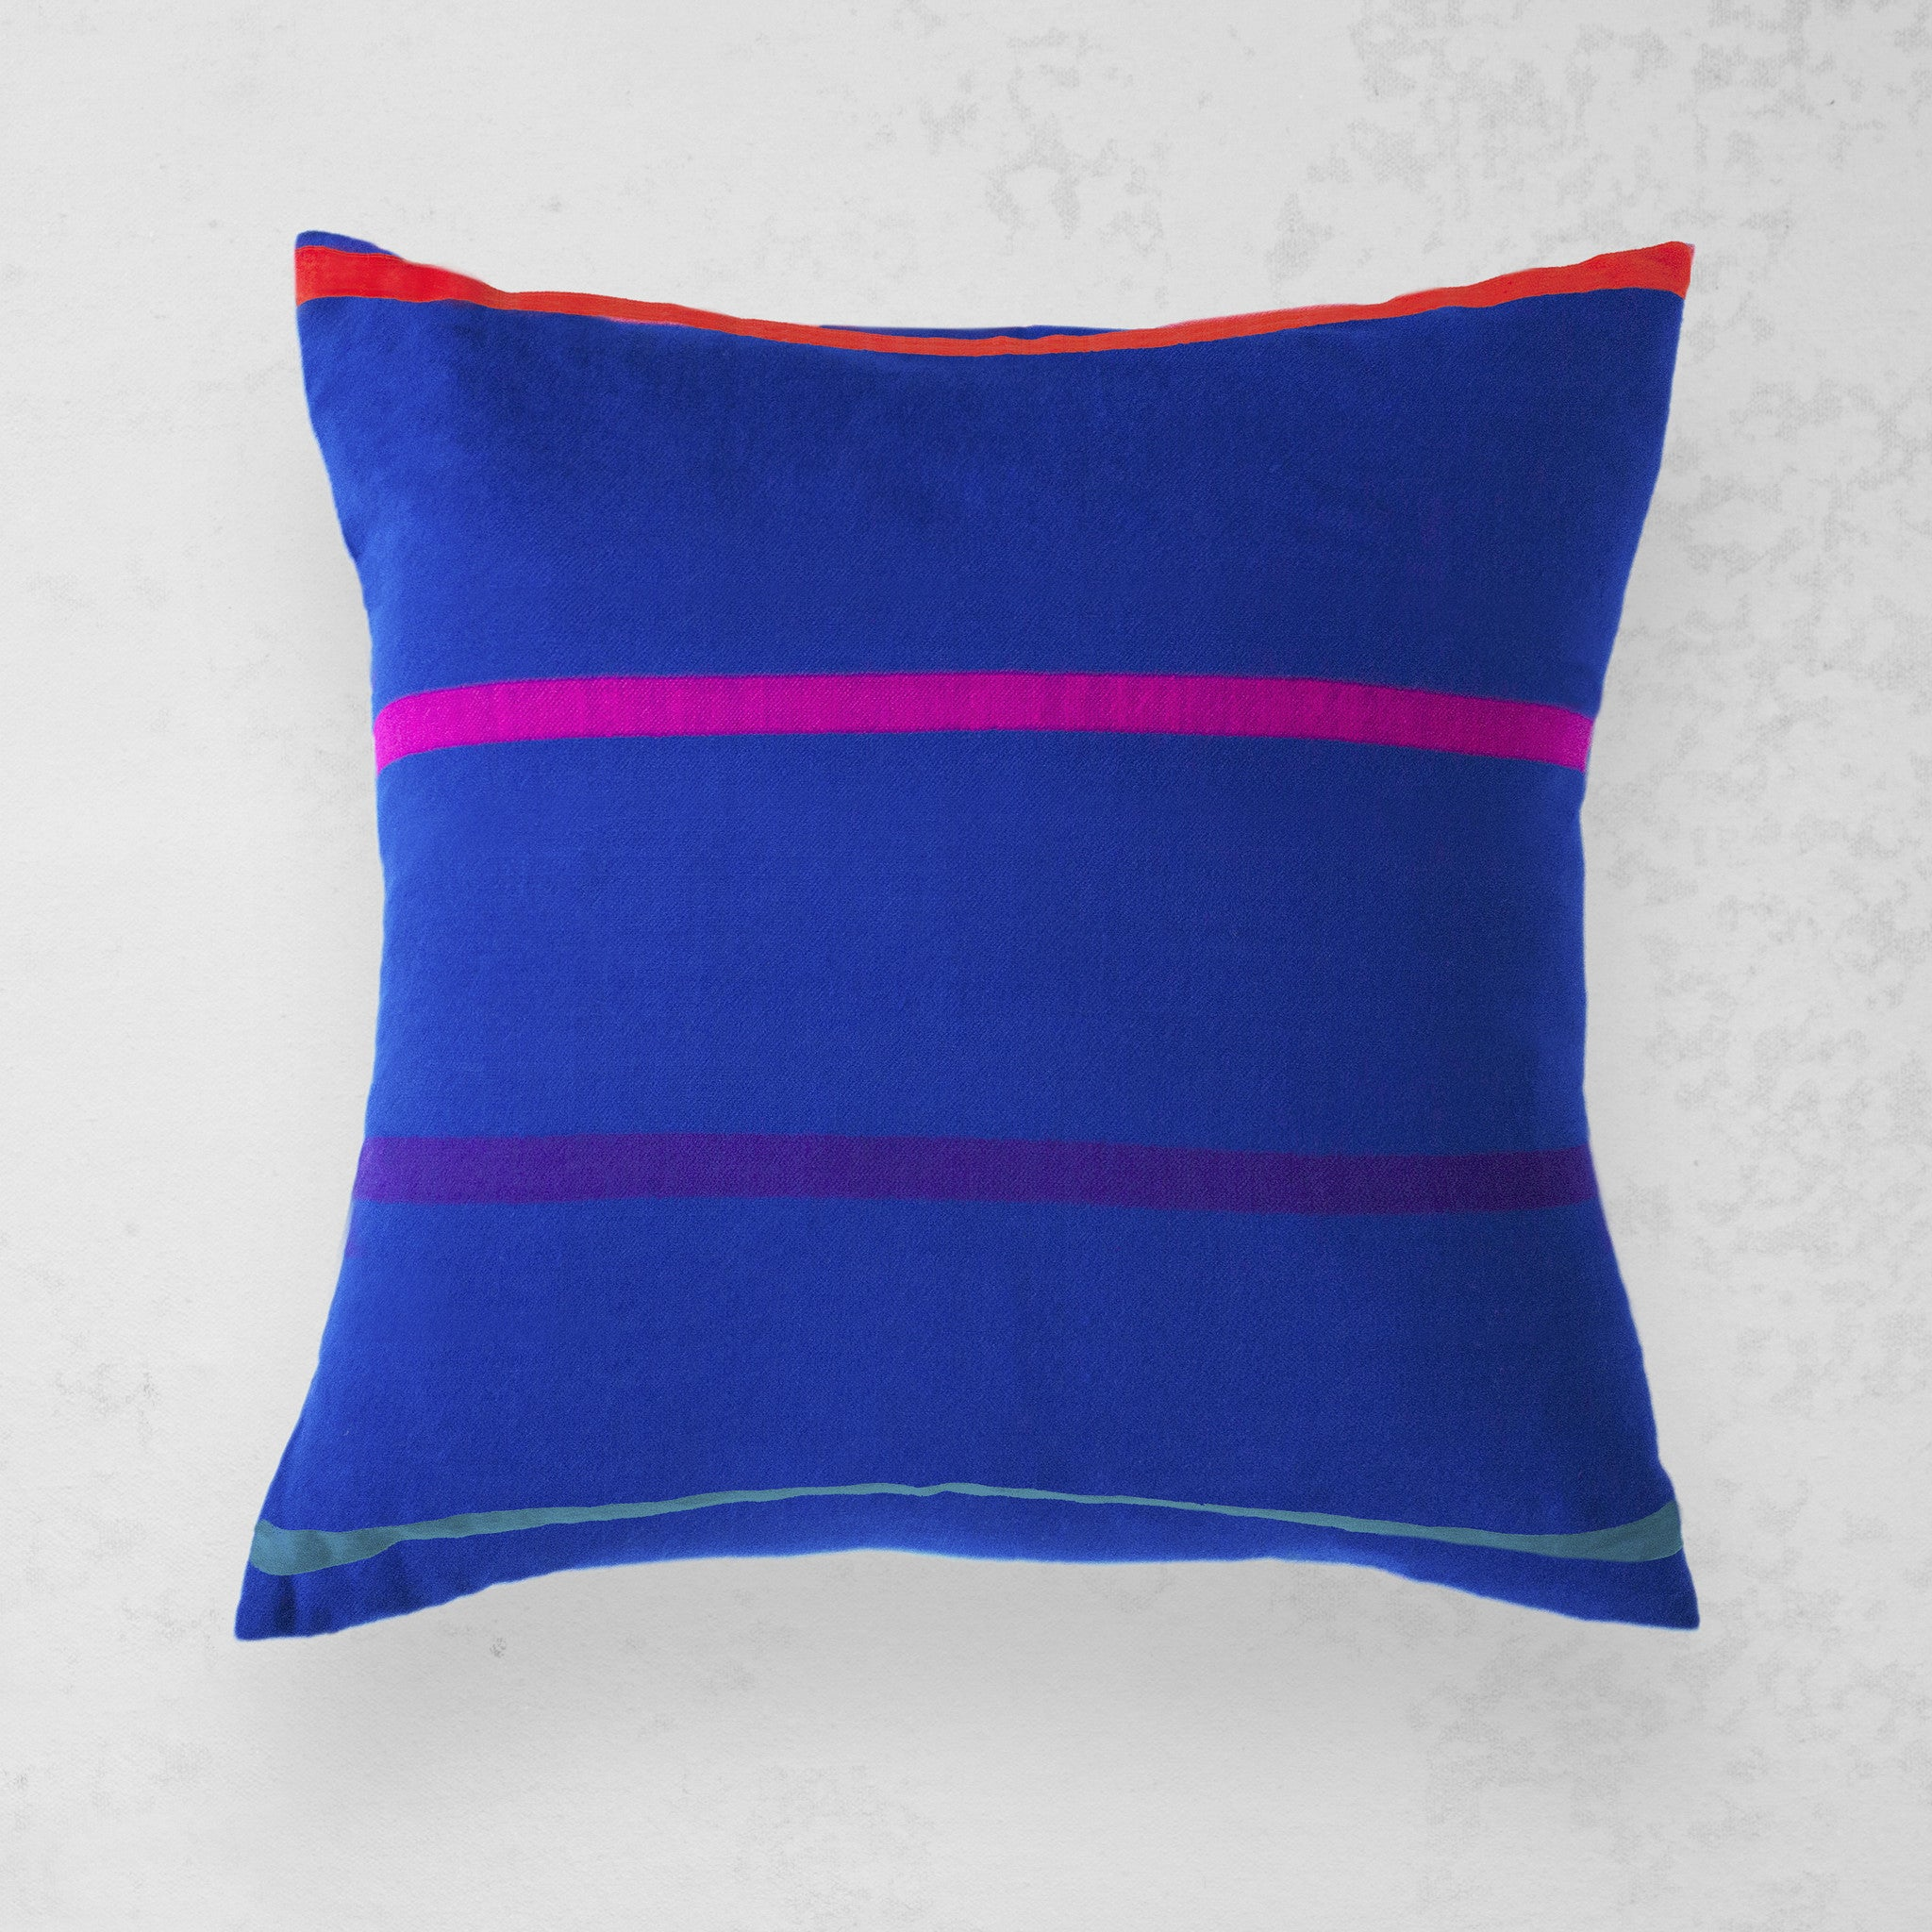 Karati Pillow - Cobalt